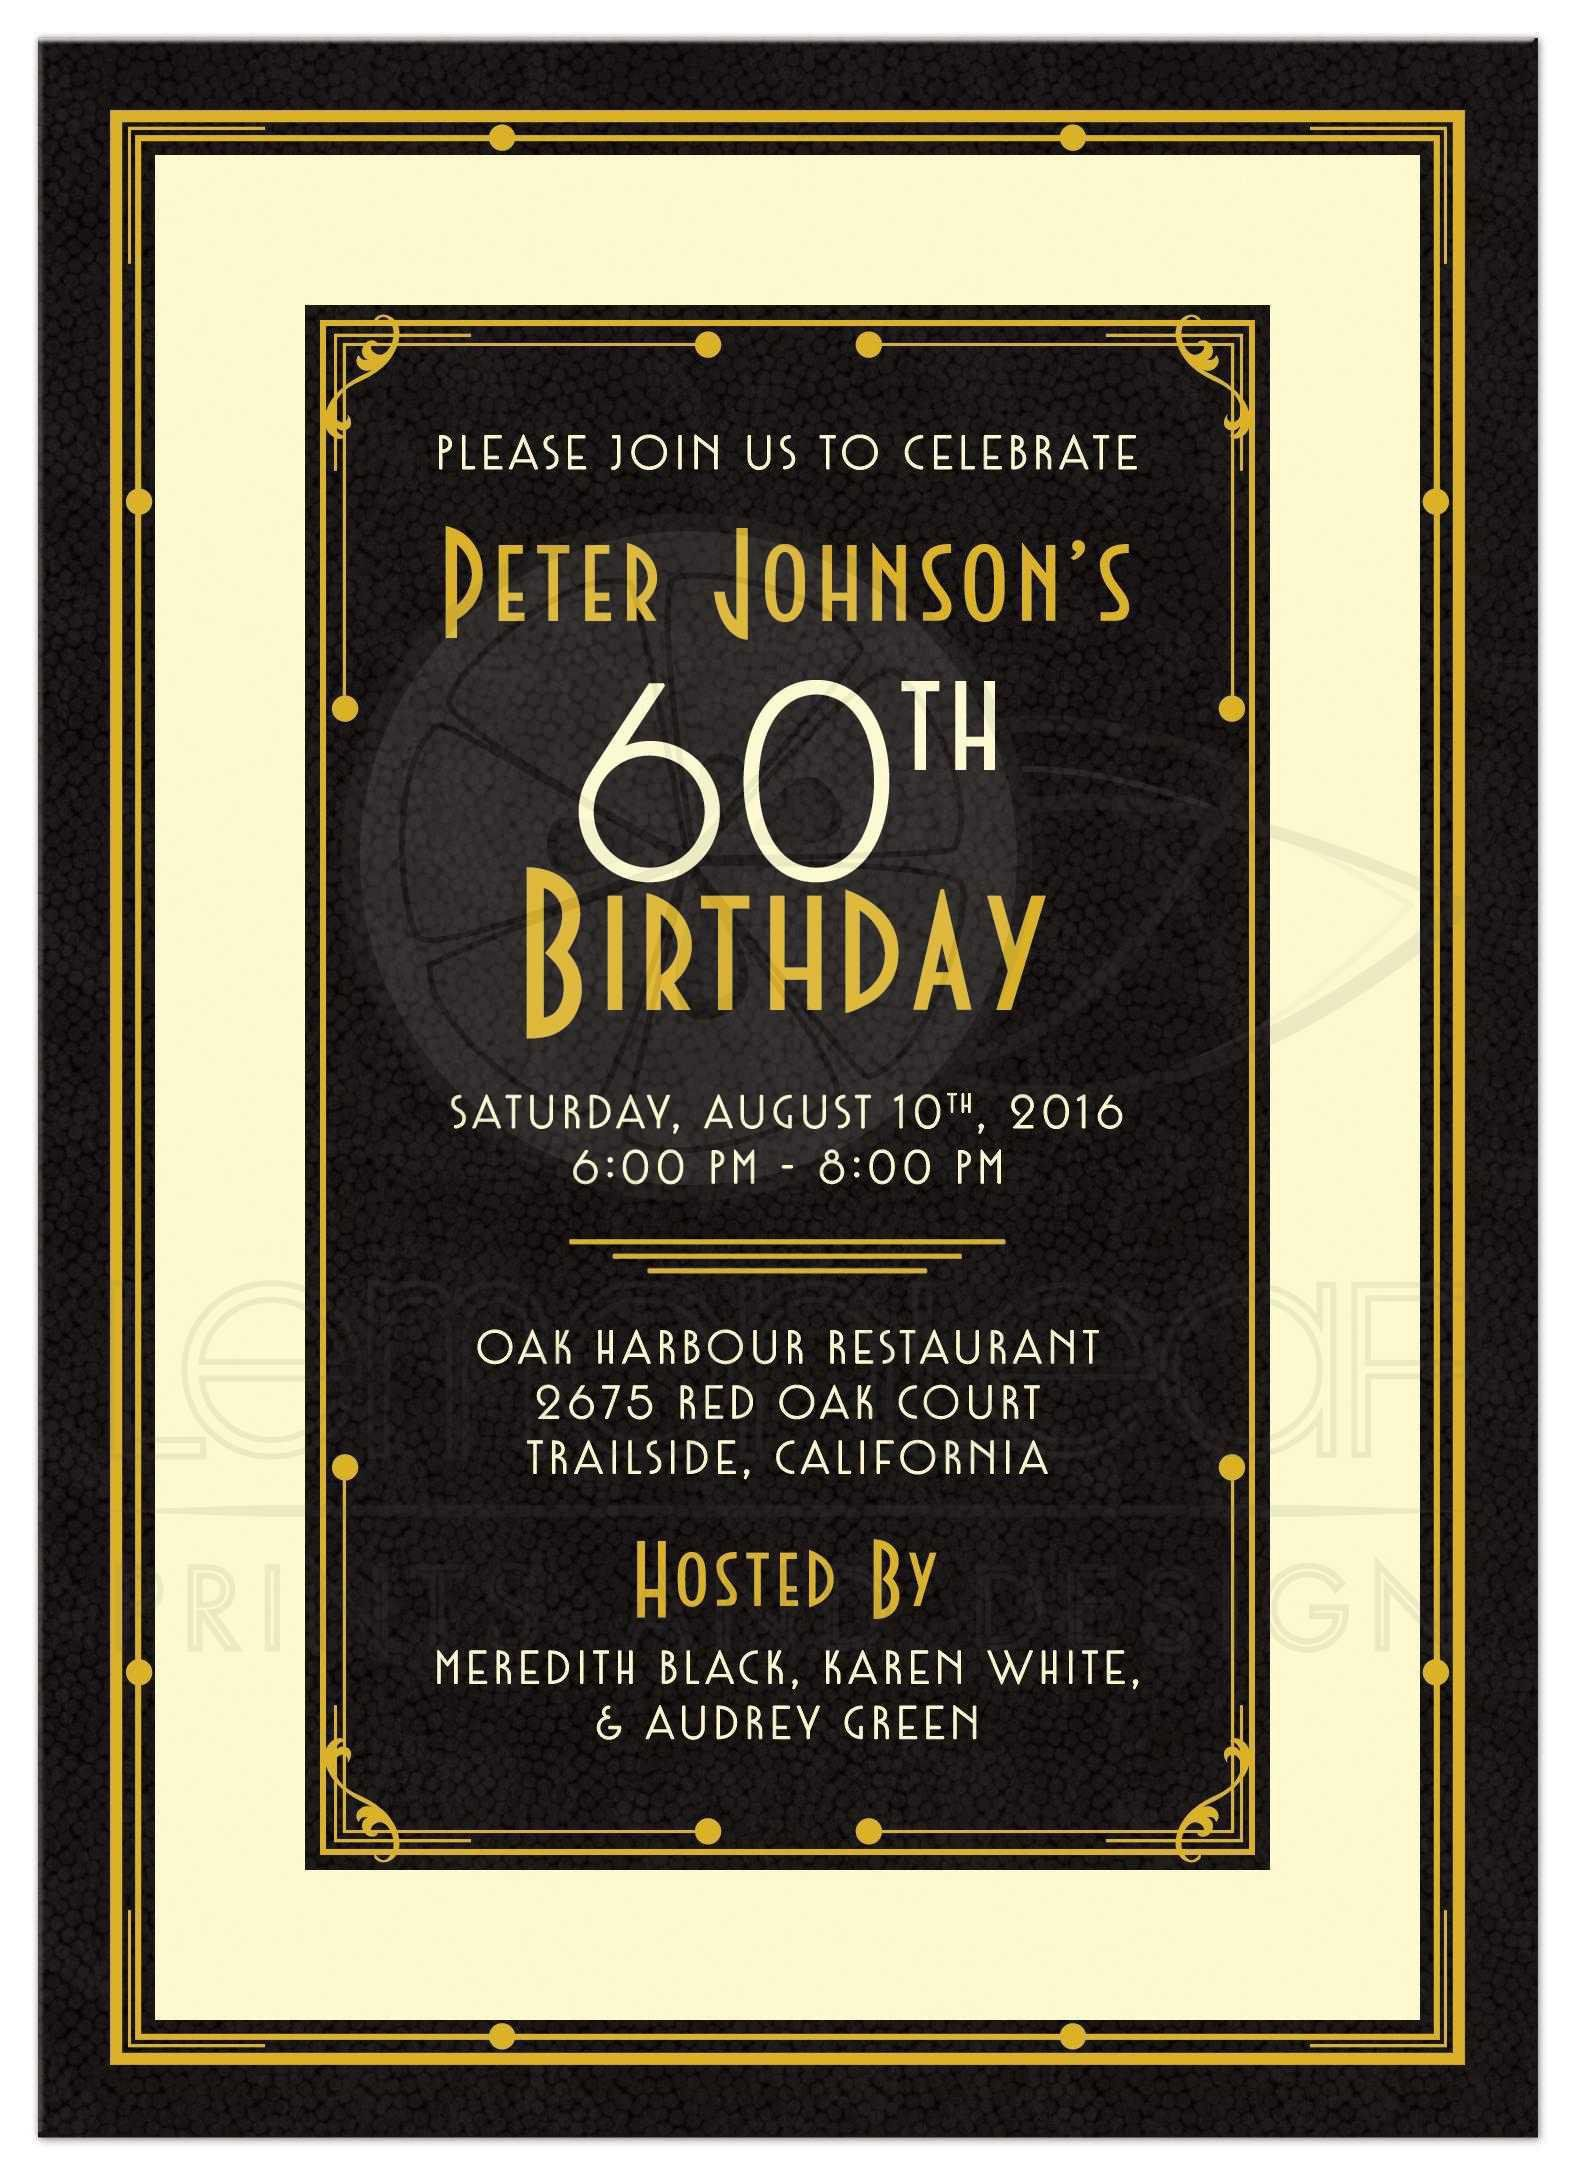 60th birthday invitations wording birthday invitations template 60th birthday invitations wording stopboris Choice Image